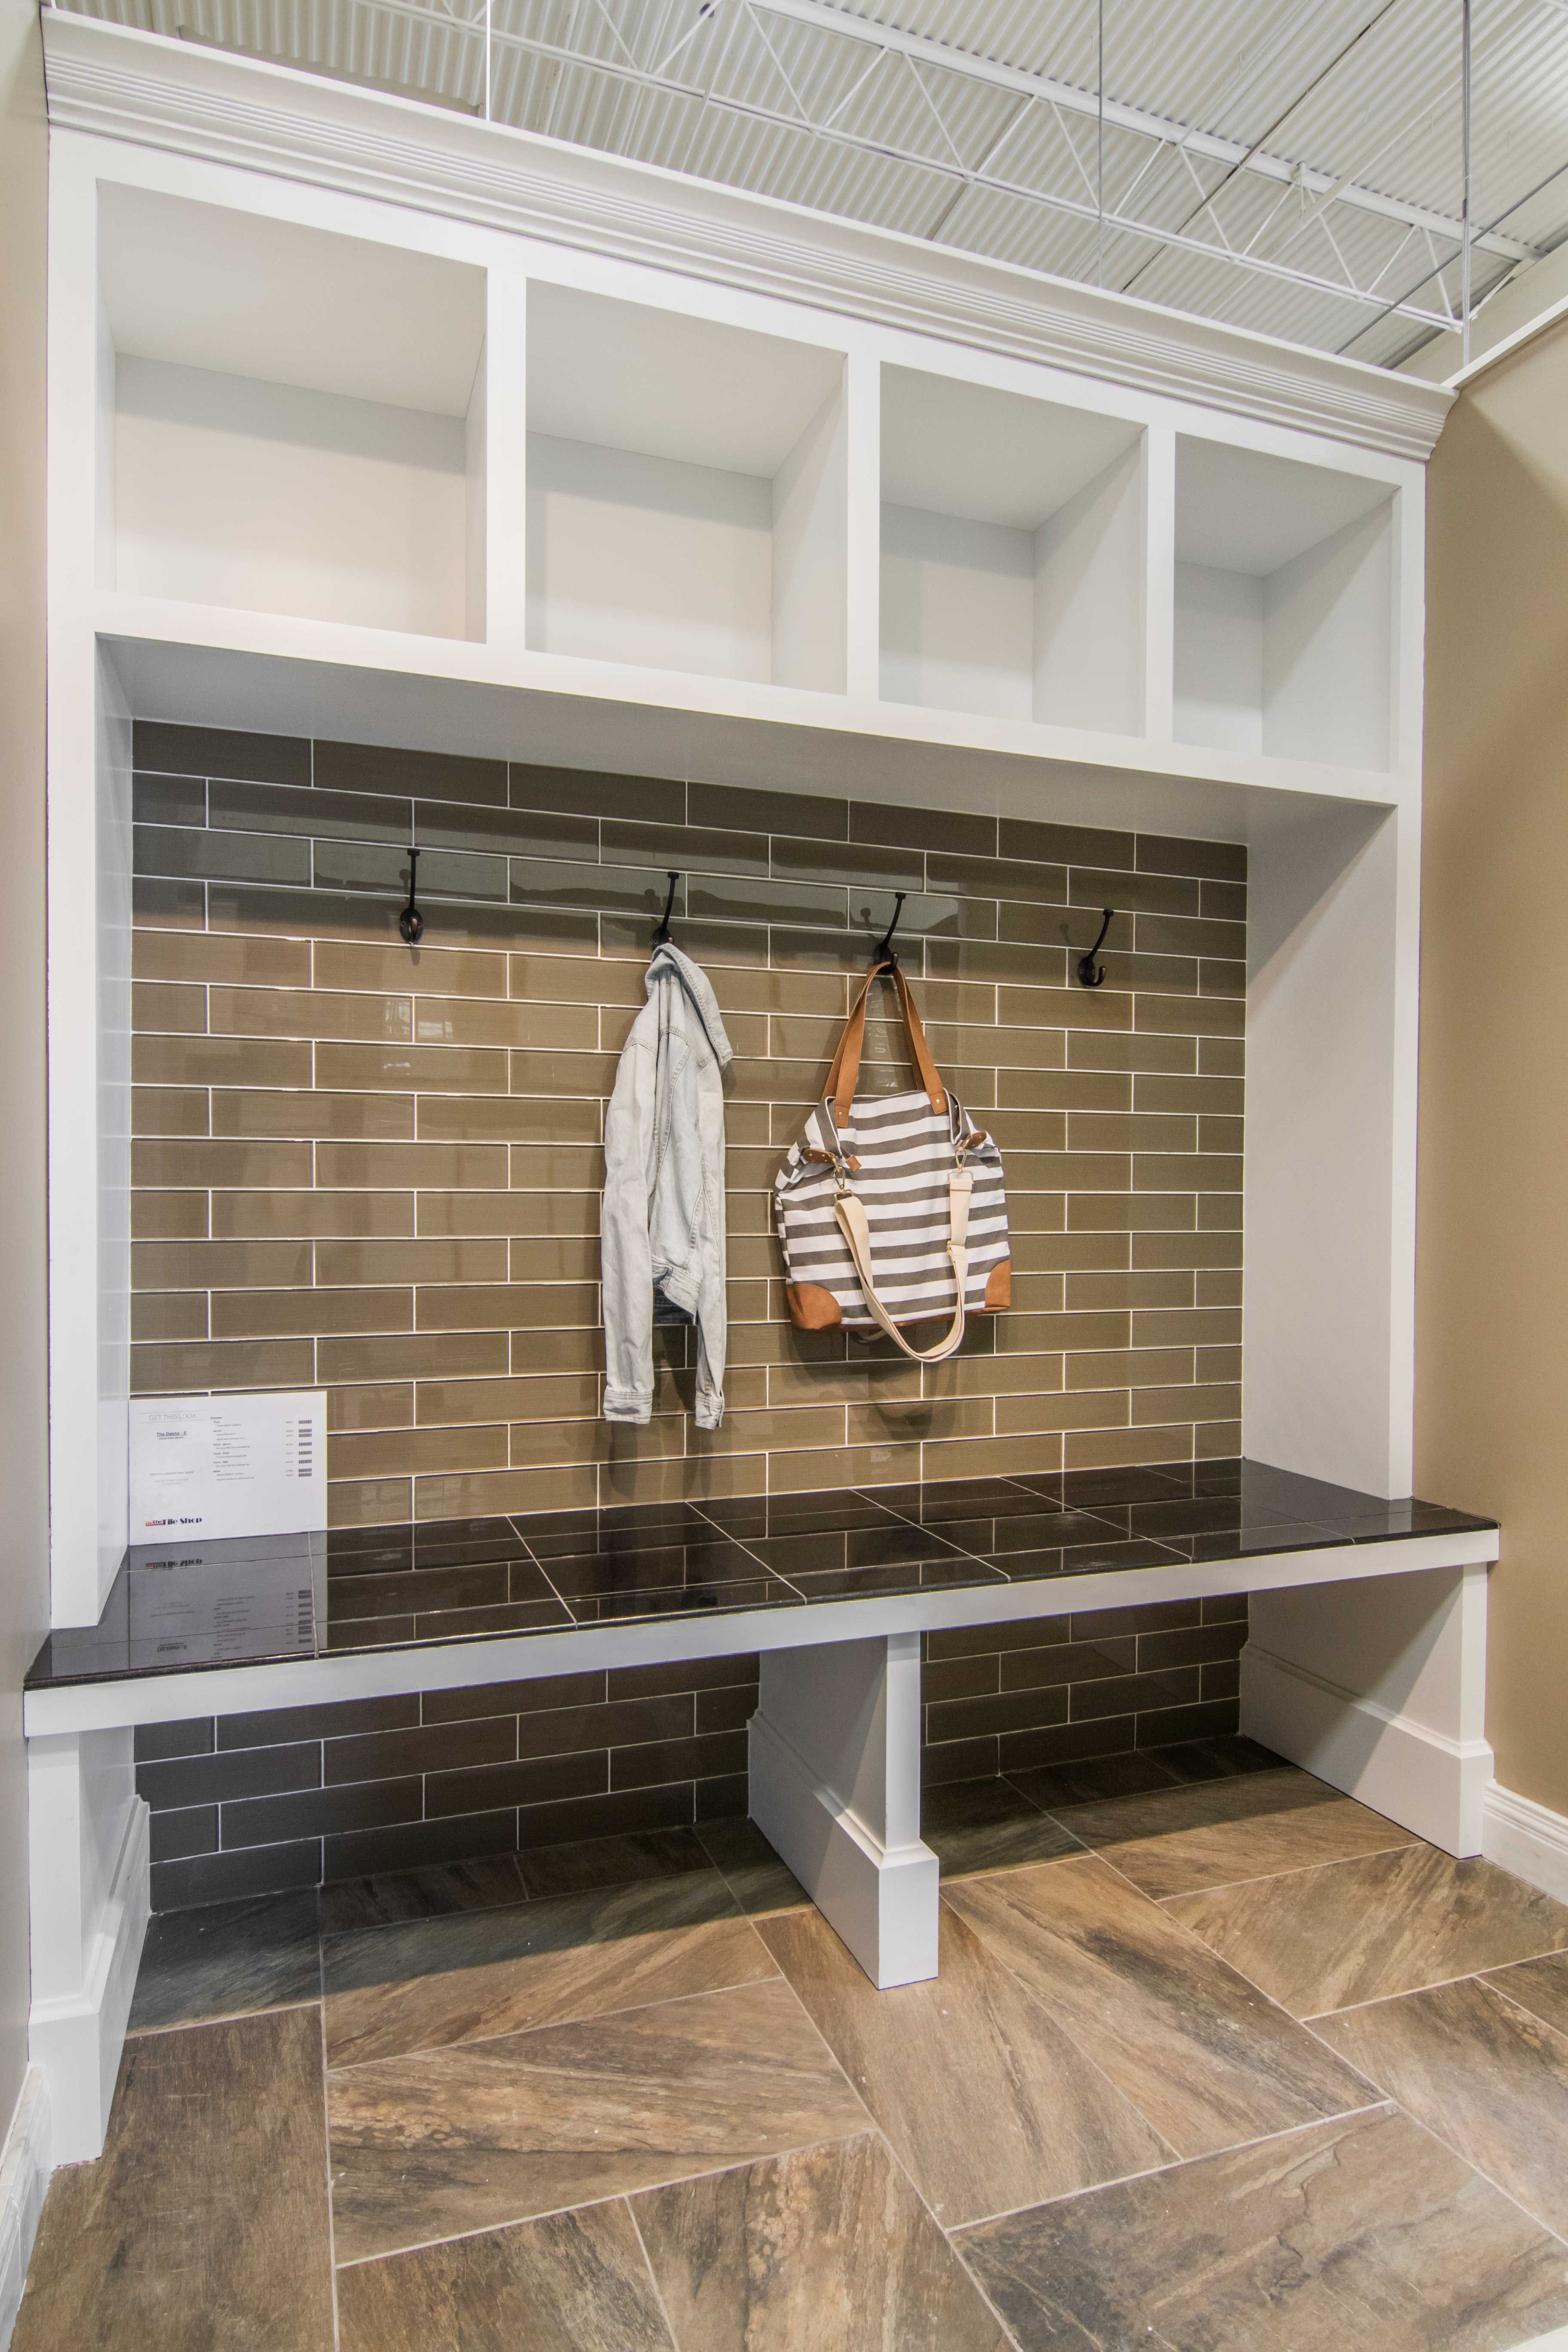 Tile Foyer And Kitchen : Entryway mudroom khaki toned wall tile halsted glass